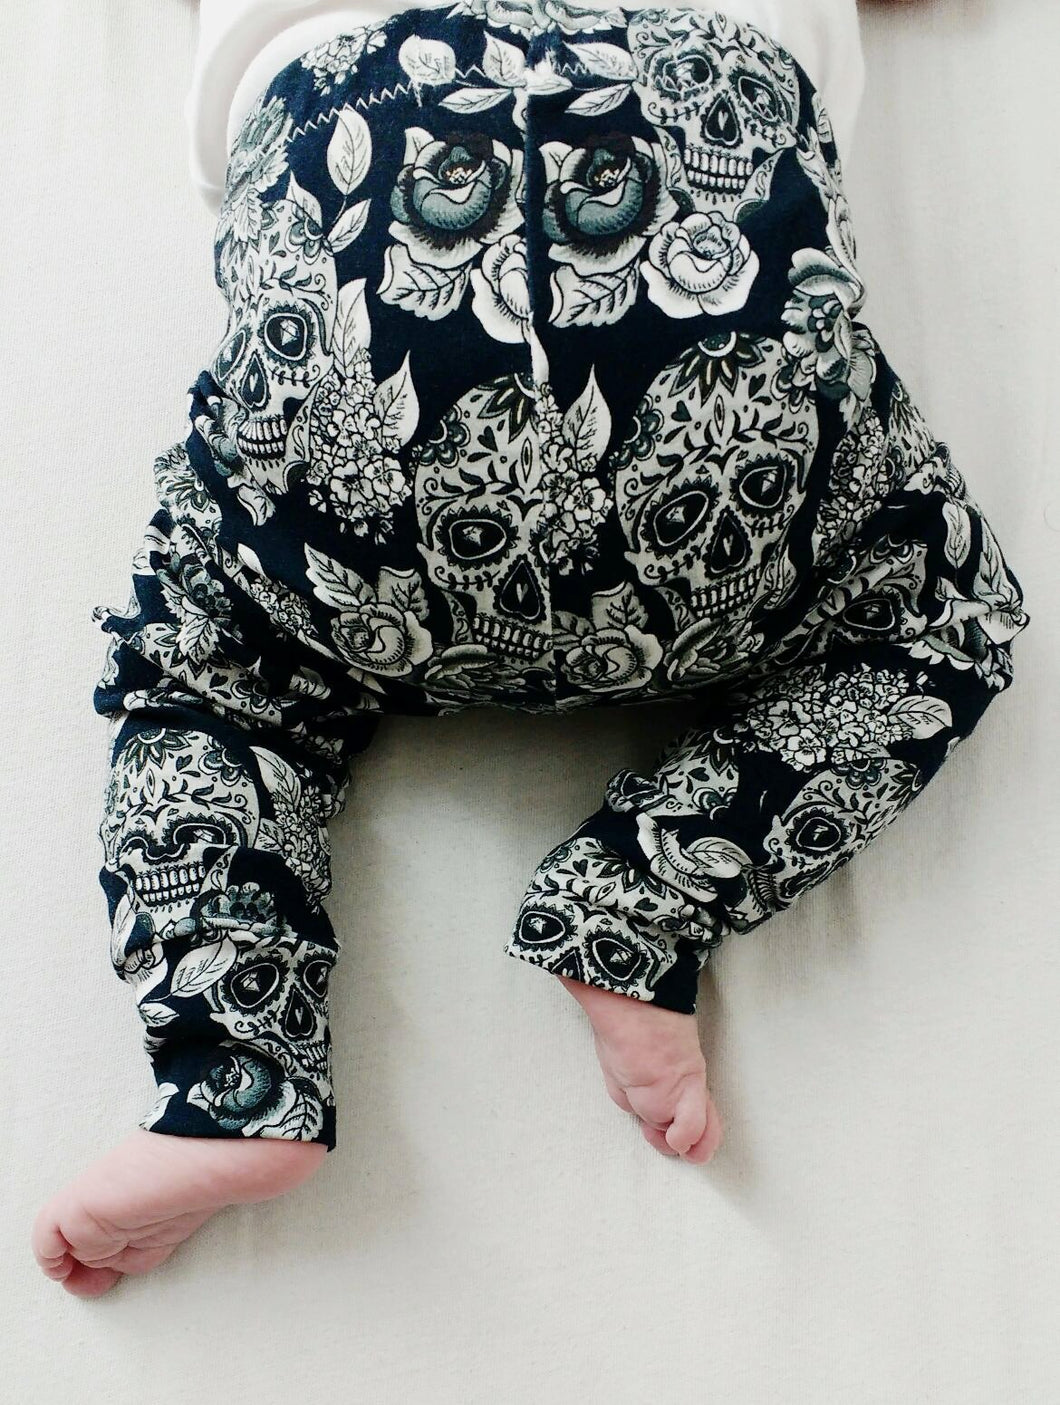 Monochrome Sugar Skull Leggings (12-18 months)